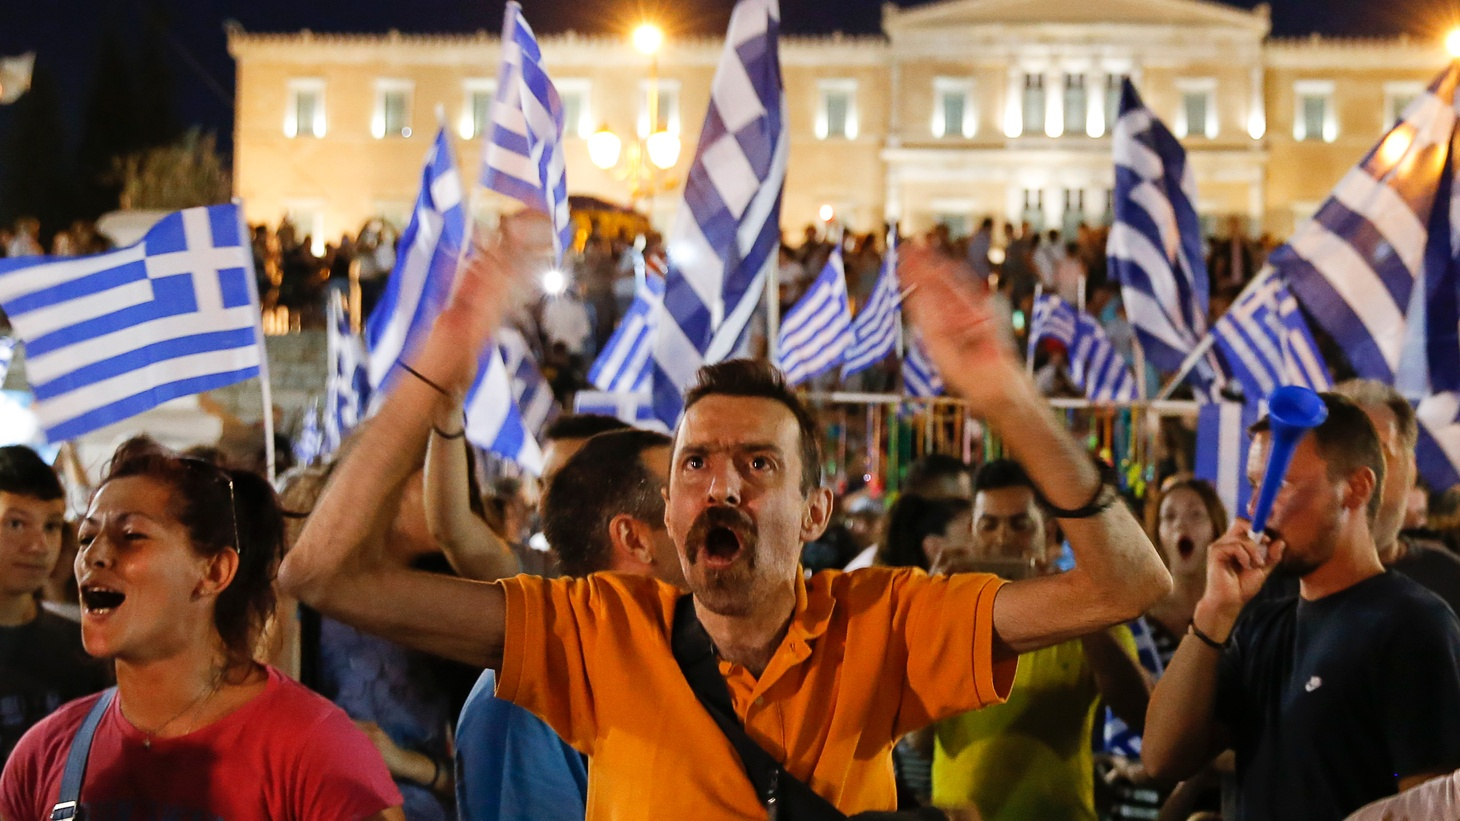 """Yesterday's resounding """"no"""" vote could push Greece out of the Eurozone, but there are signs of conciliation and EU leaders have yet to make any decisions. Was America's largest trading partner prepared for the worst?"""